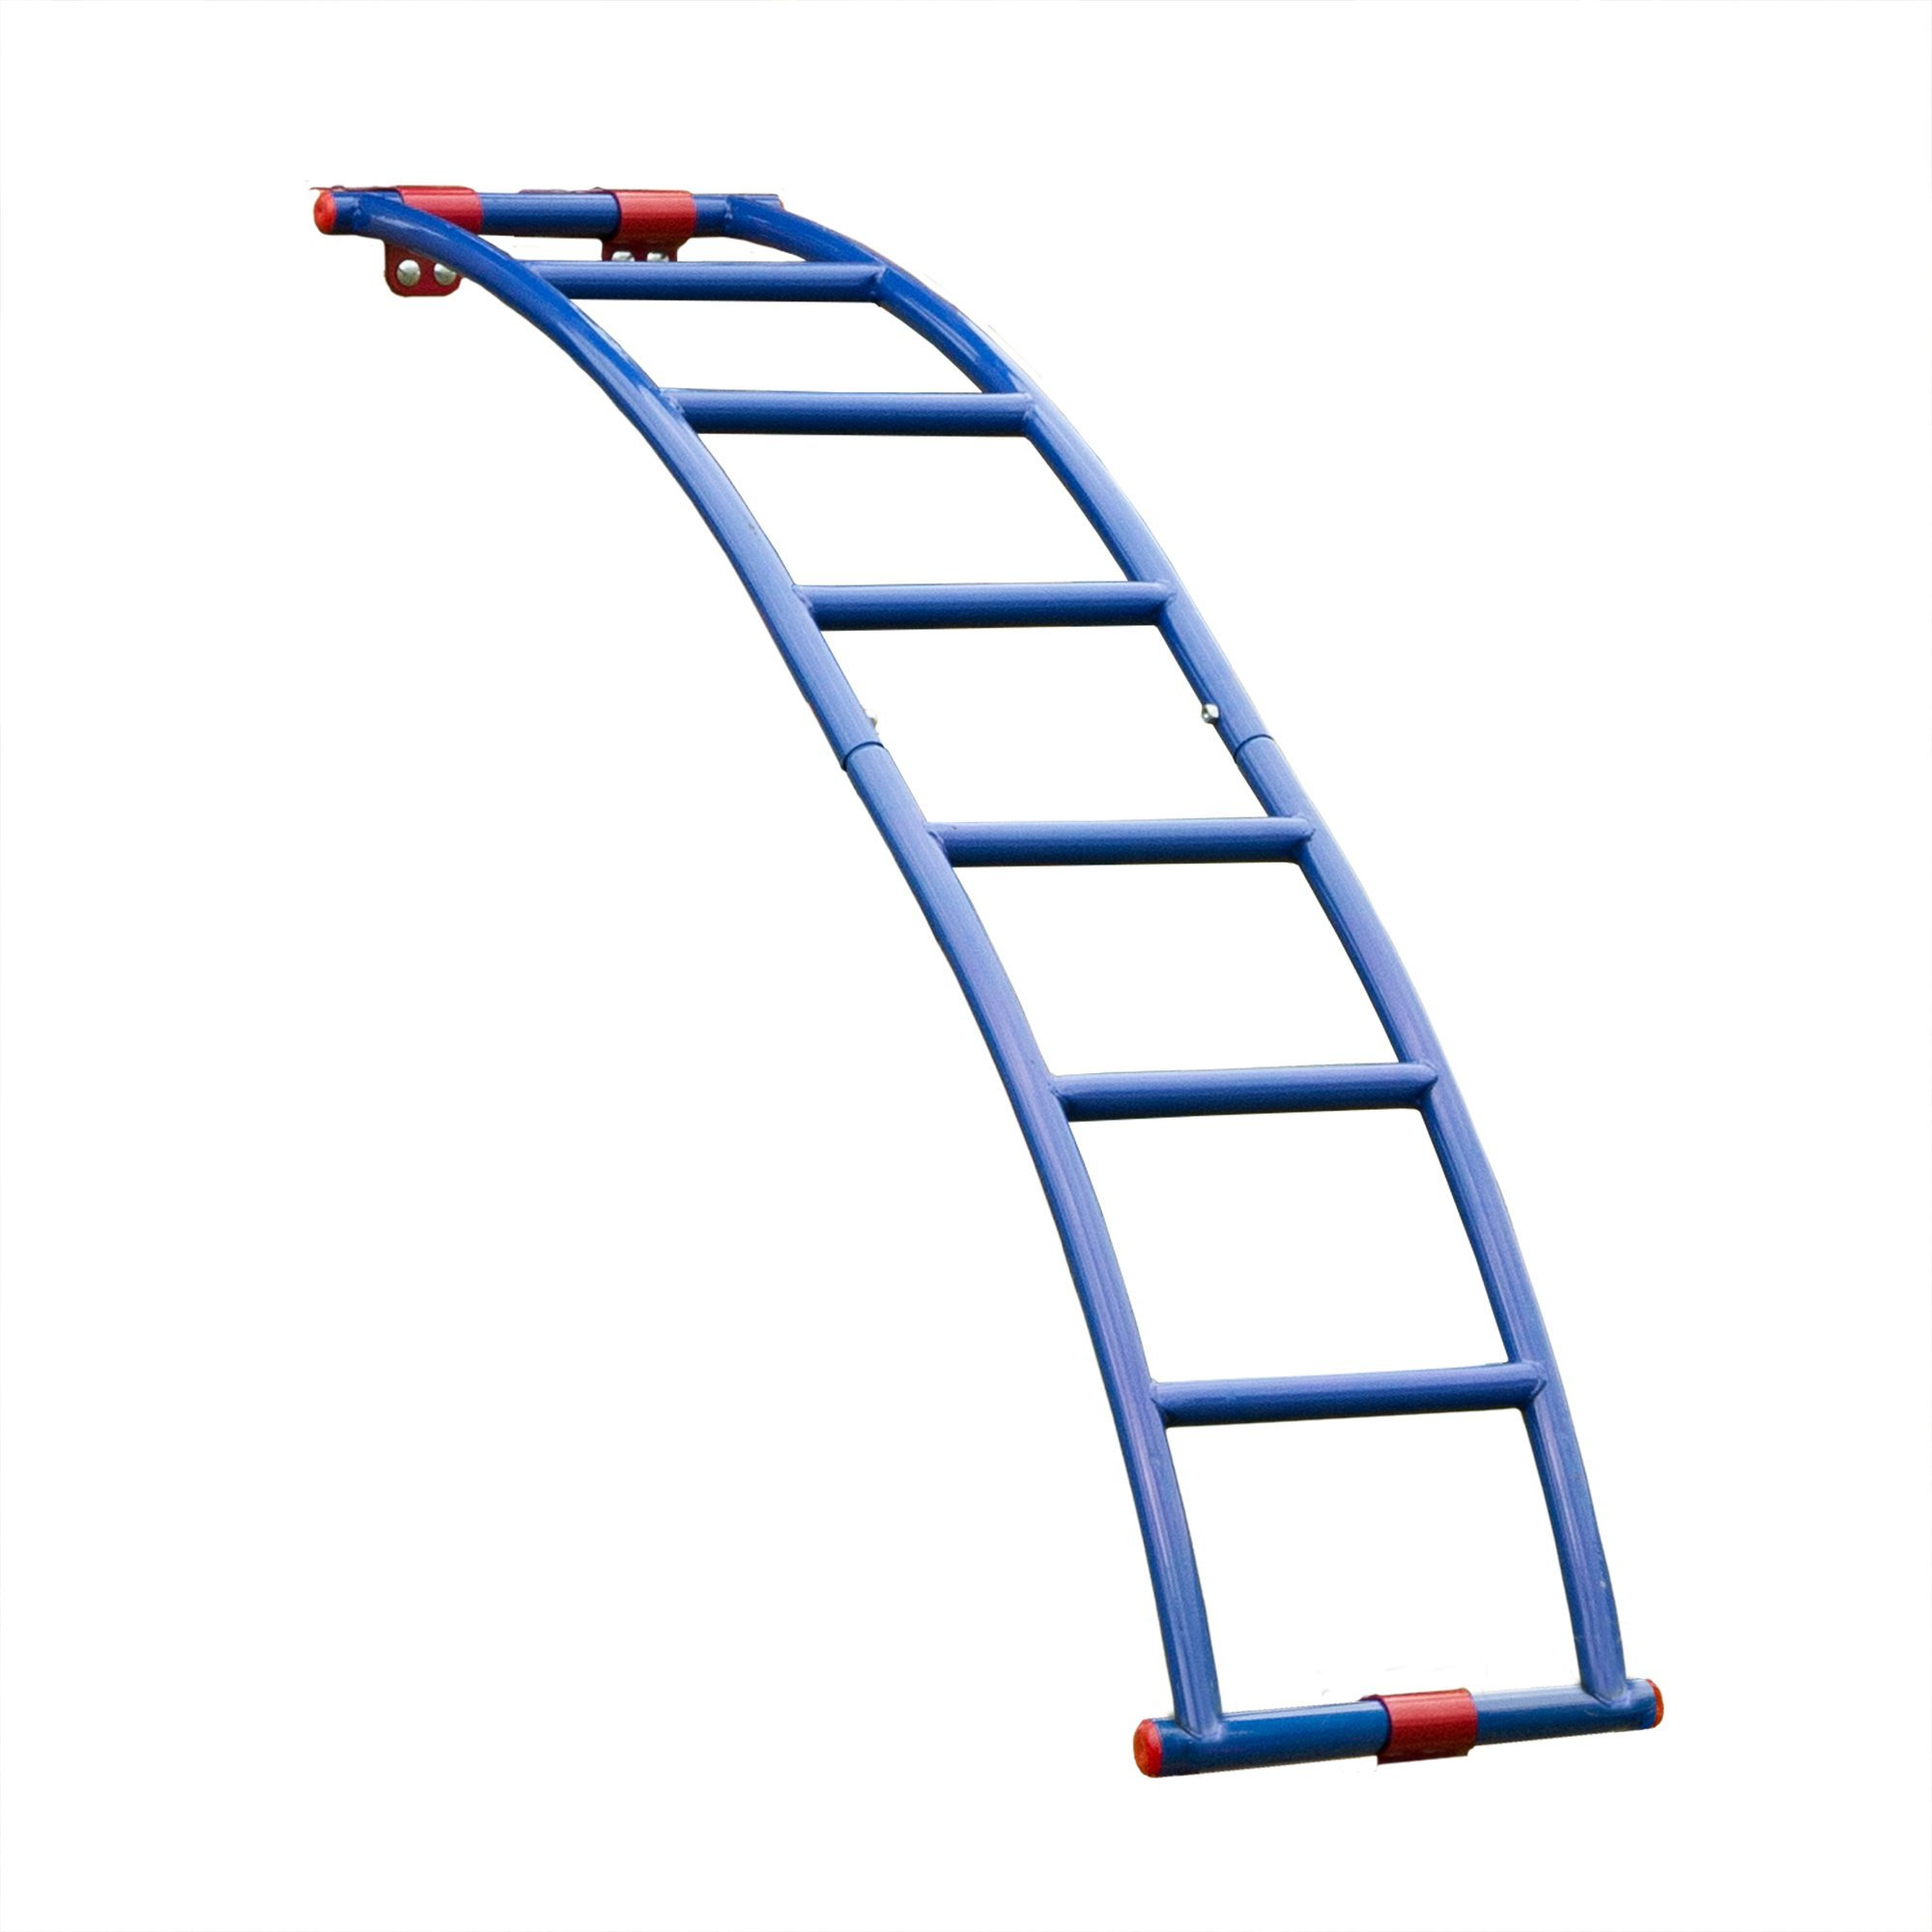 Swing-N-Slide NE 5040 Metal Arch Ladder with Multiple Configurations for Swing Sets, Play Sets & Playhouses, Blue & Red by Swing-N-Slide (Image #2)